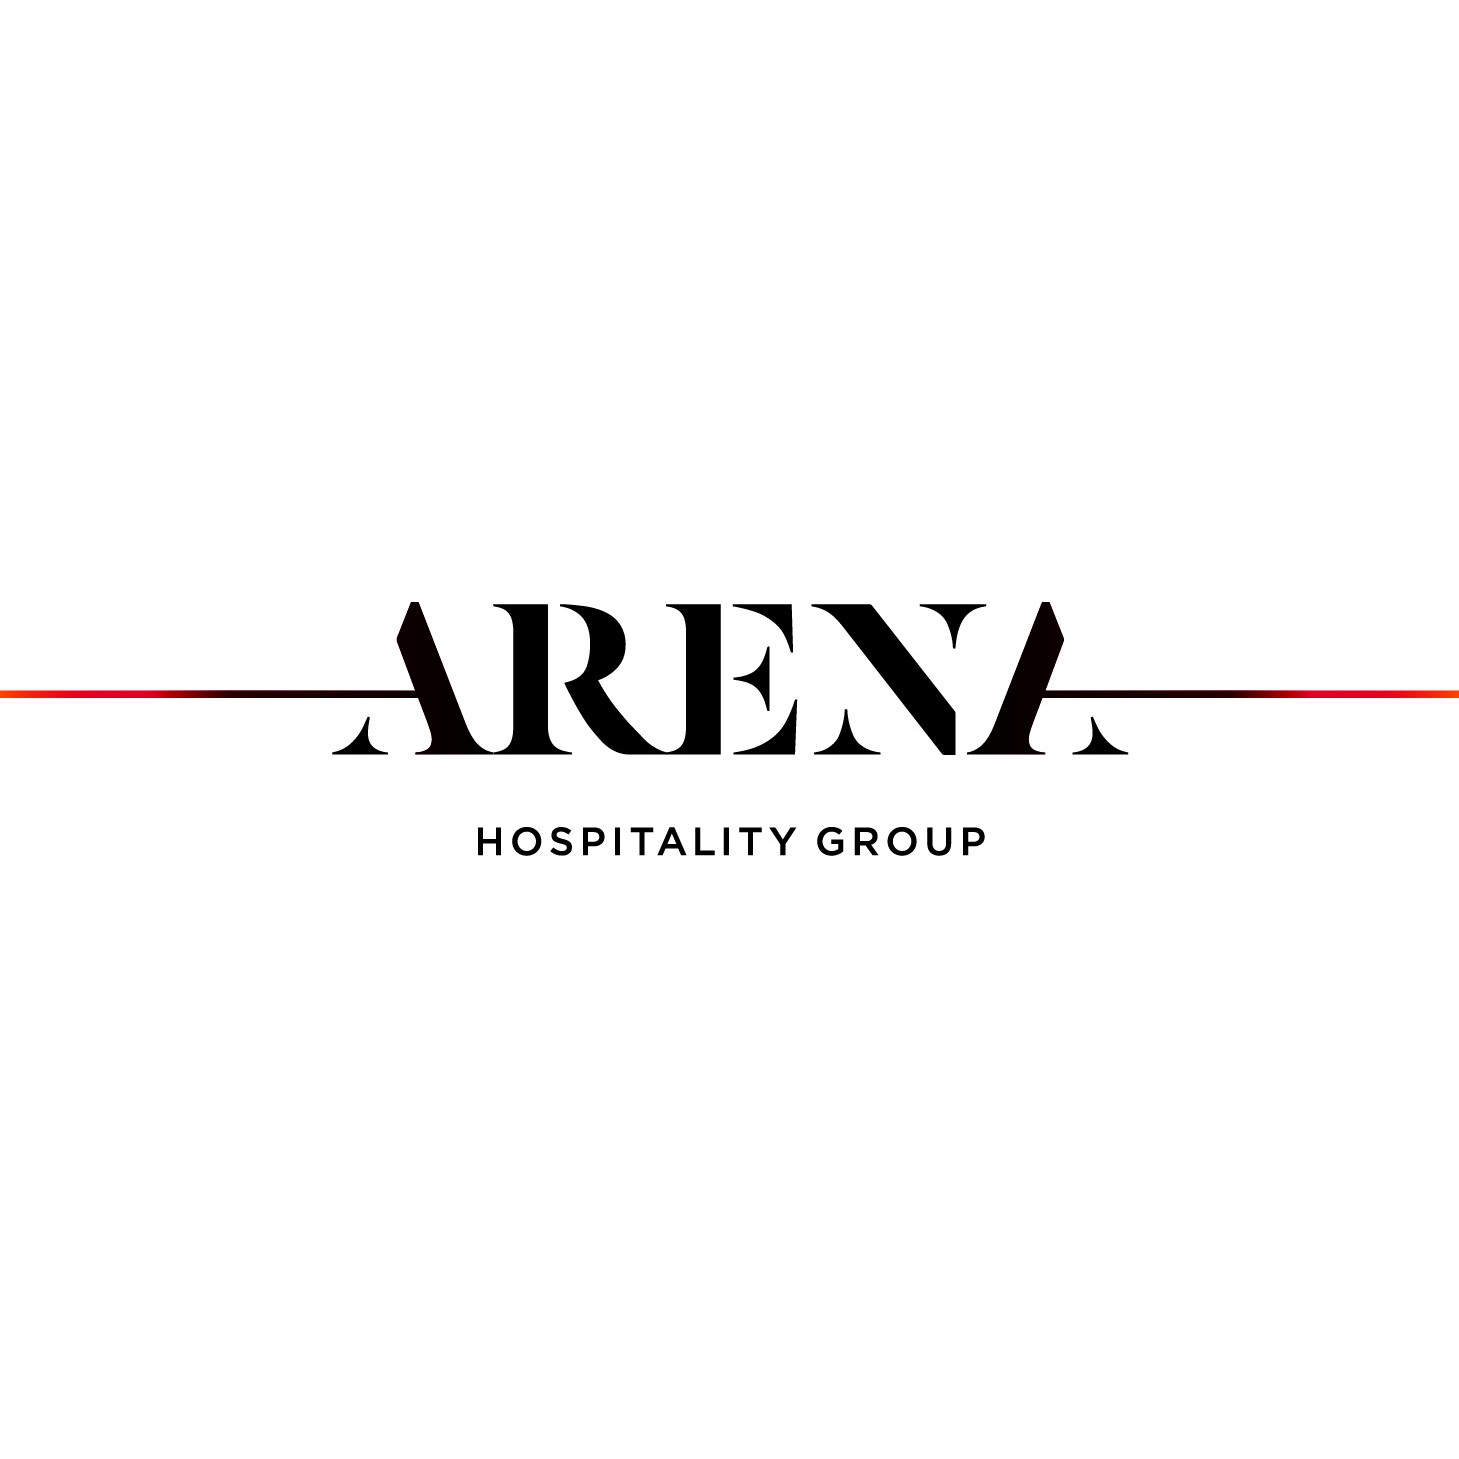 Arena Hospitality Group